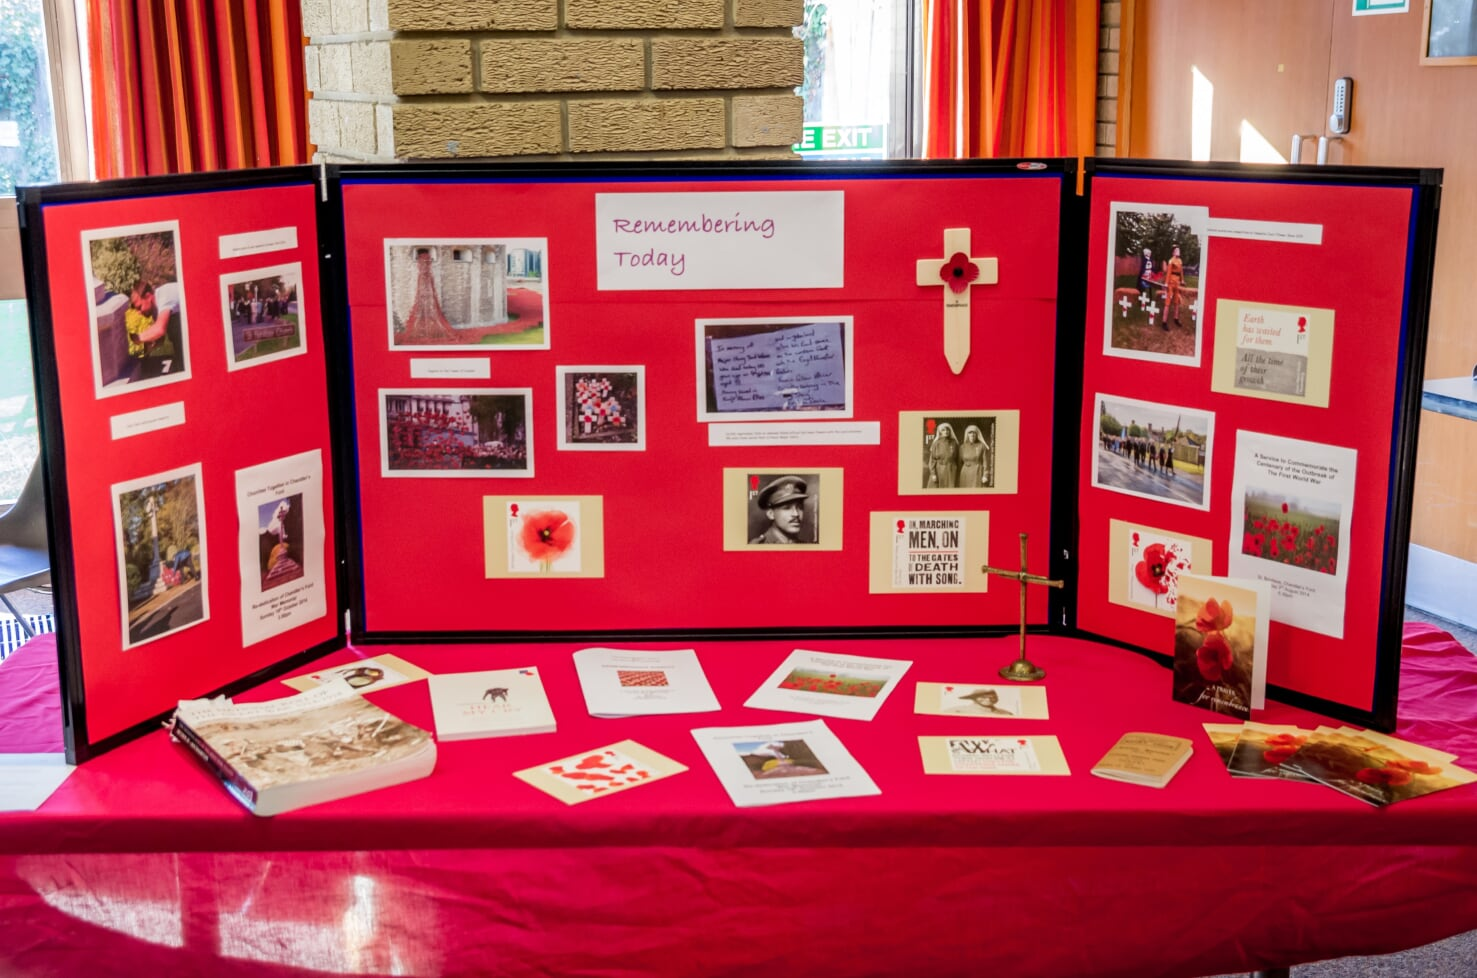 A display of remembrance at the book launch. Image credit: Debbie Pearce Photography